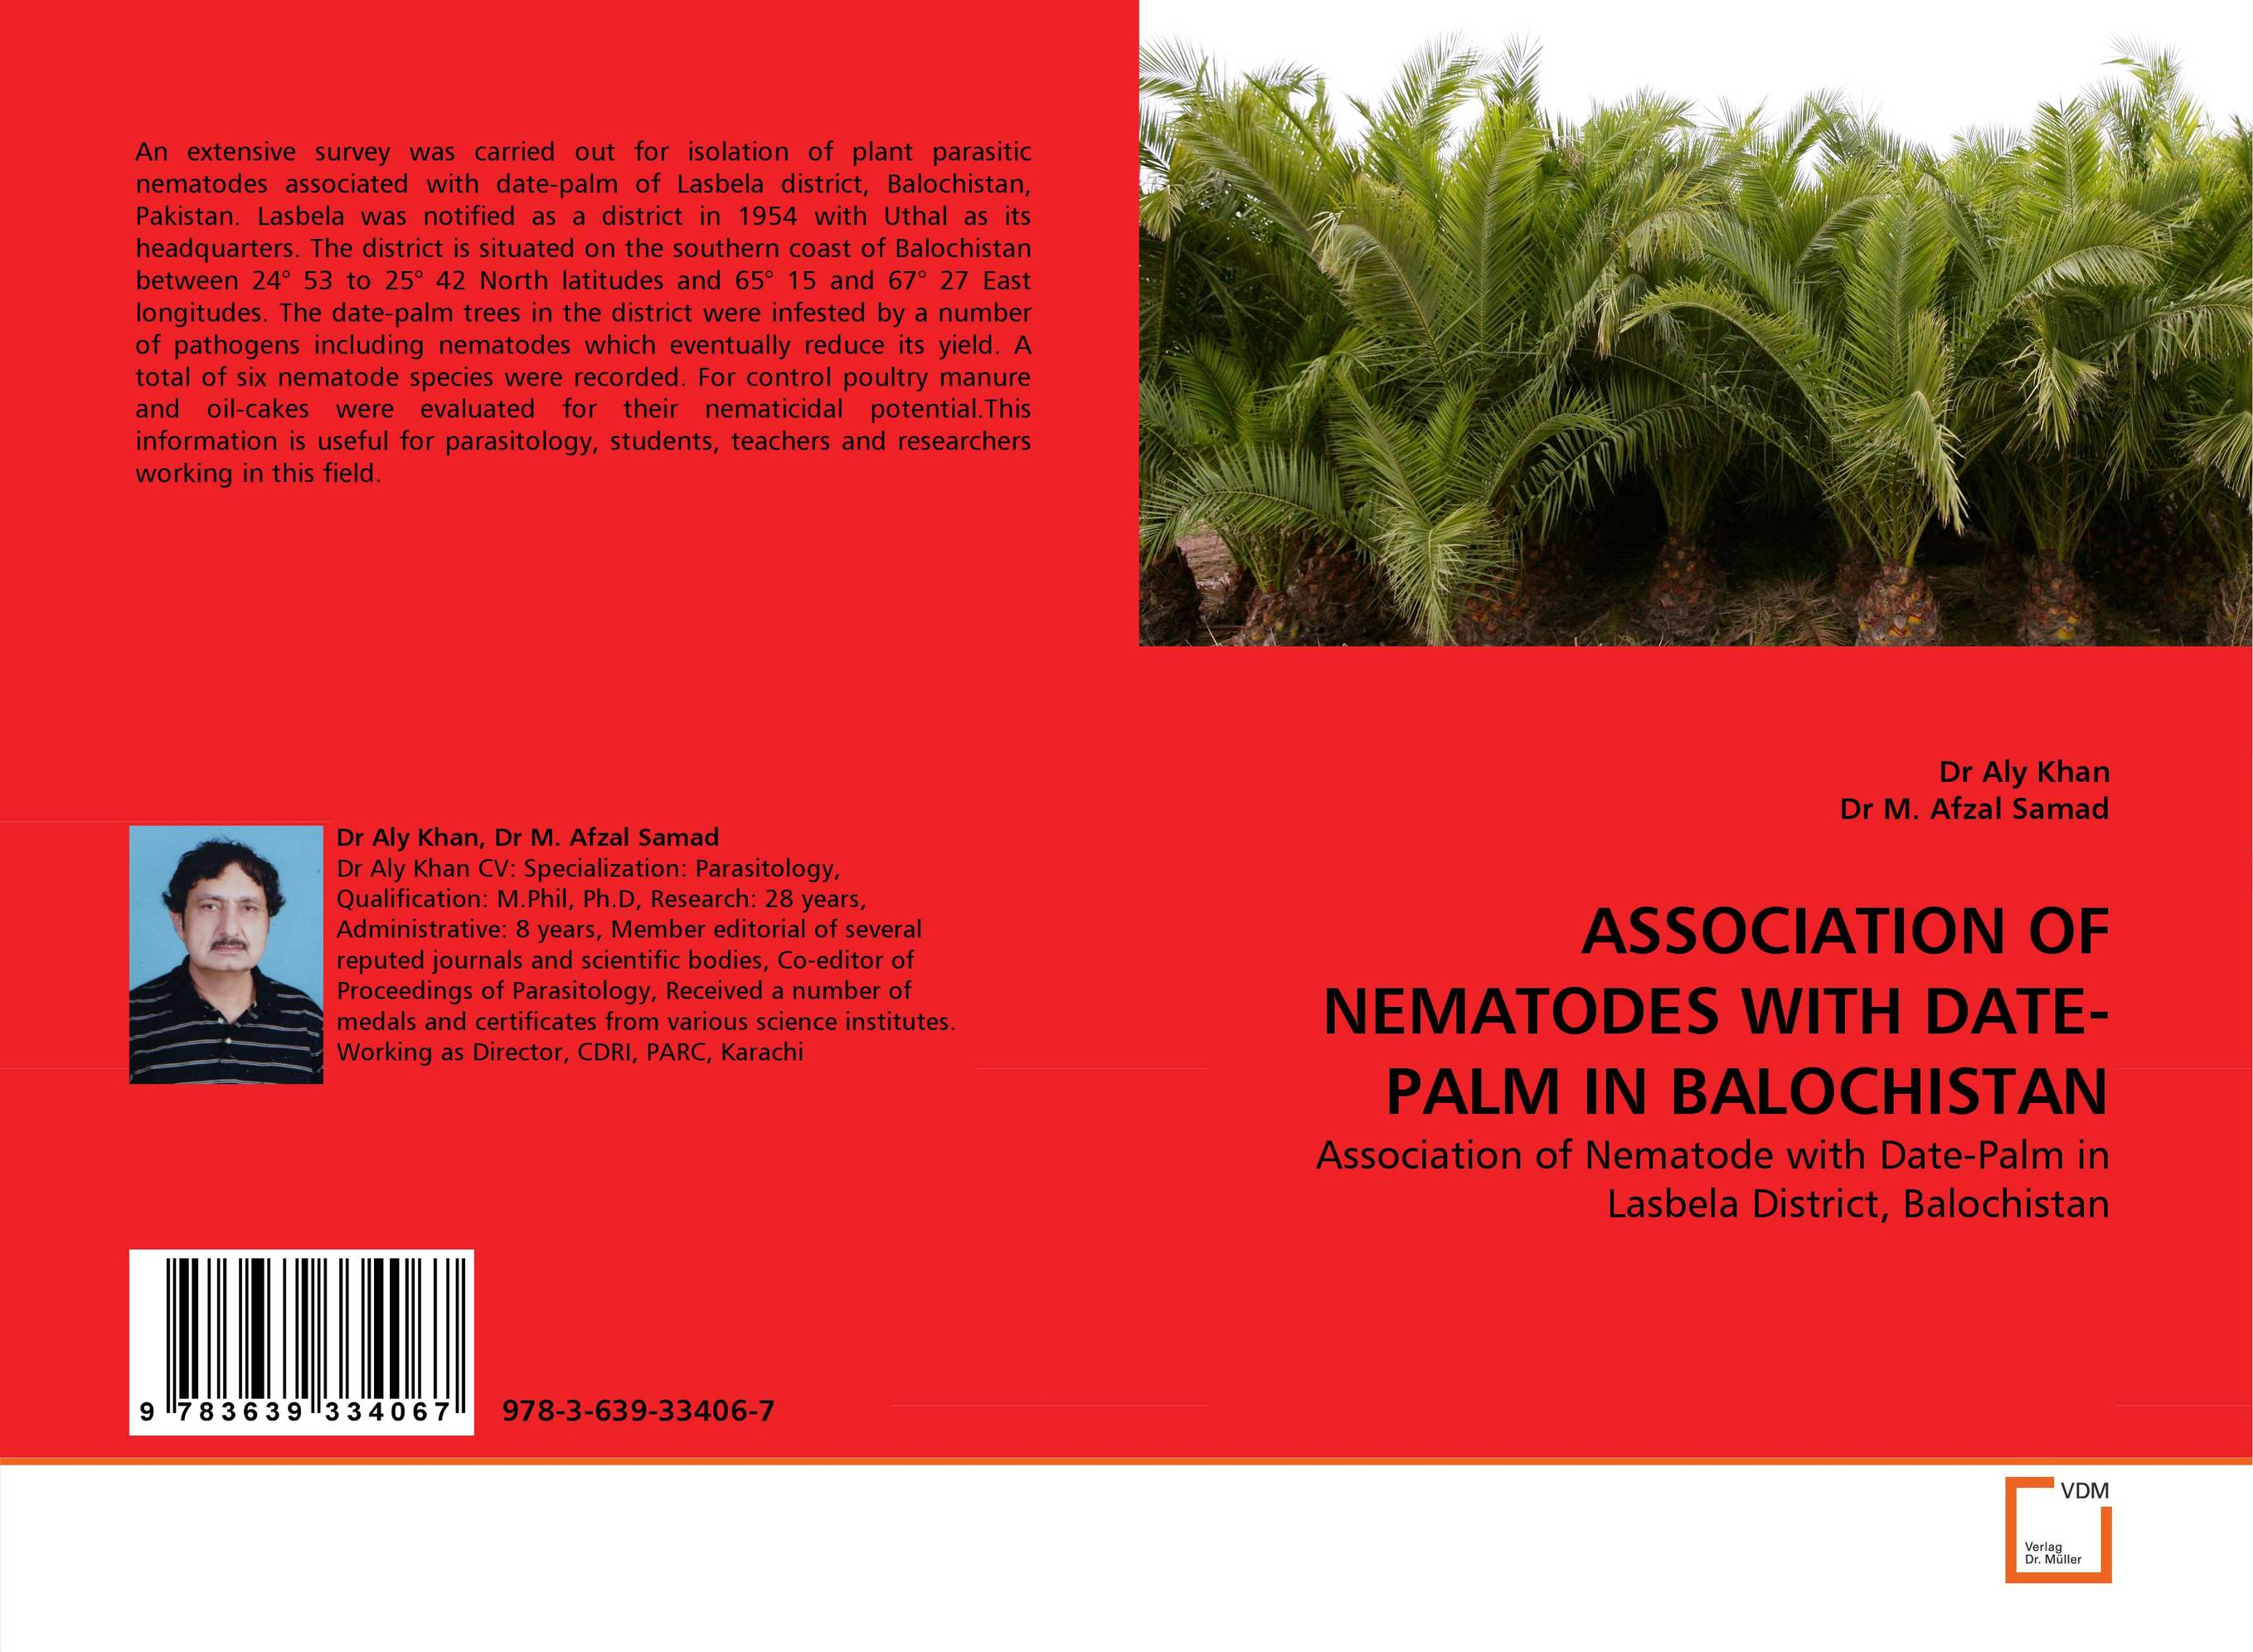 ASSOCIATION OF NEMATODES WITH DATE-PALM IN BALOCHISTAN nematodes associated with maize and their control